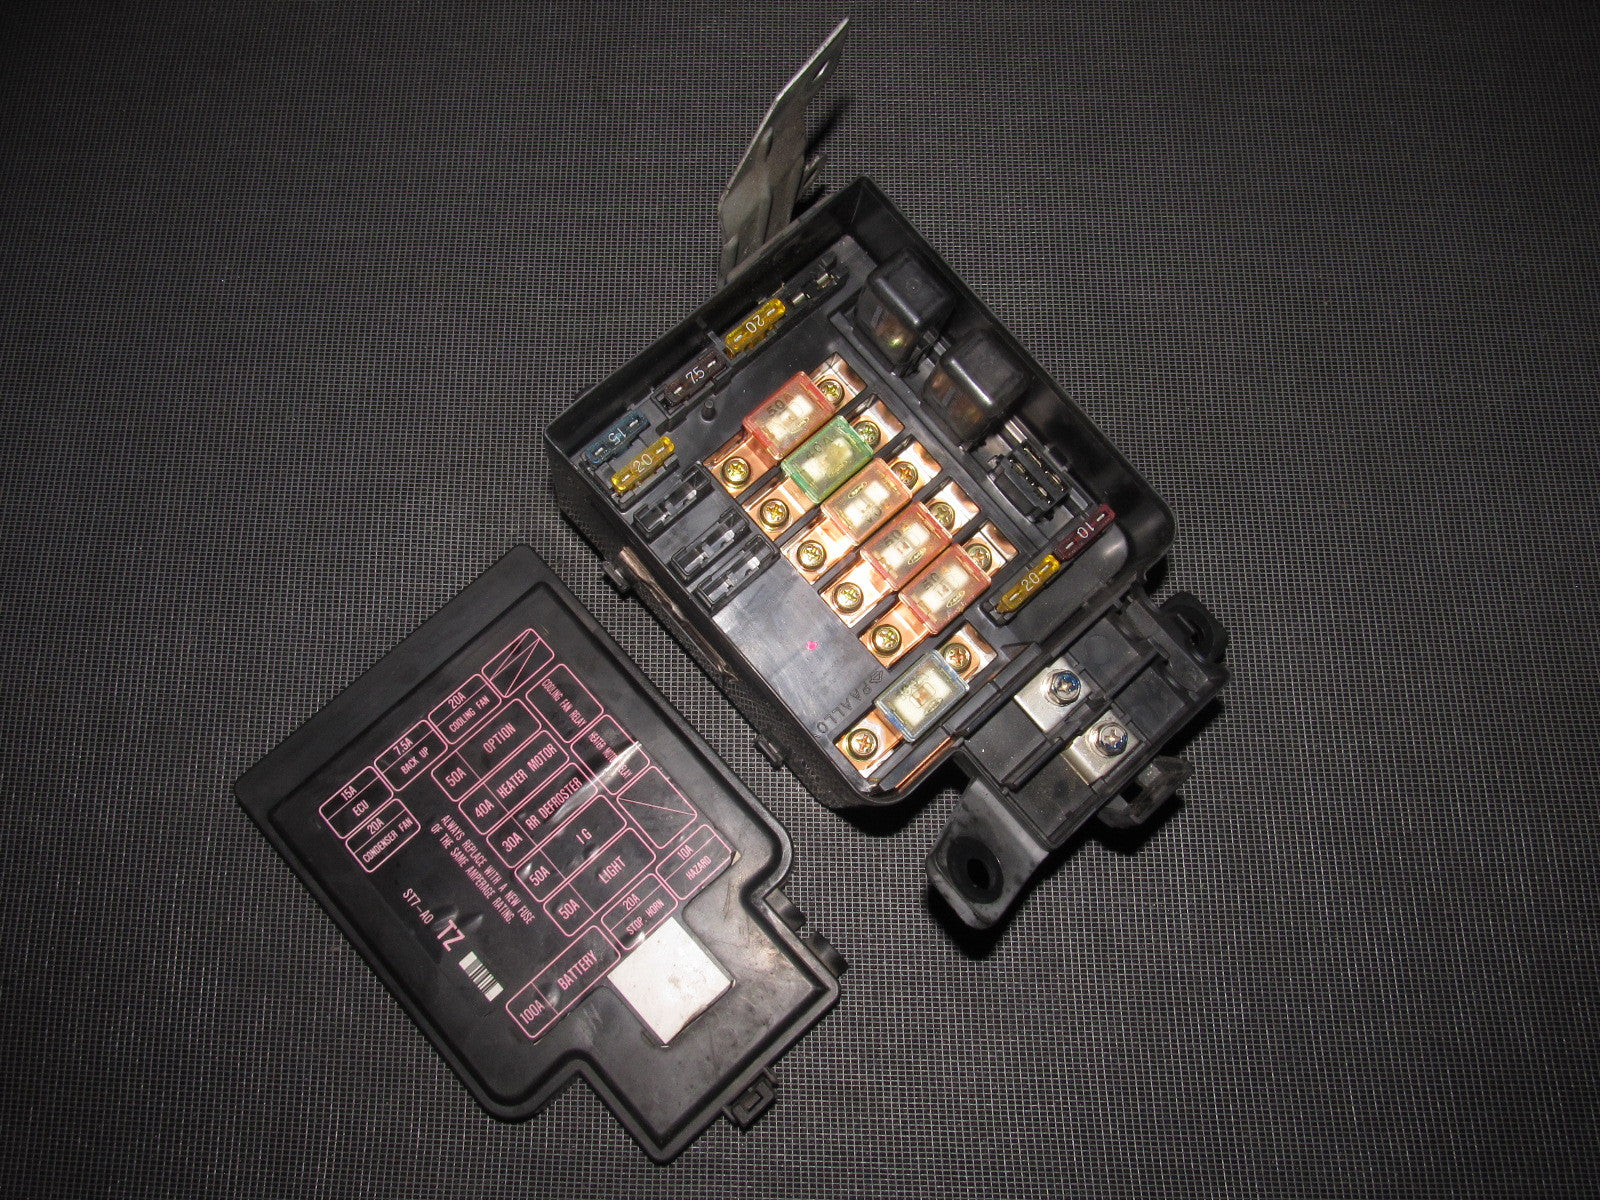 civic fuse diagram photo album diagram 96 01 acura integra oem engine fuse box b18b1 autopartone com